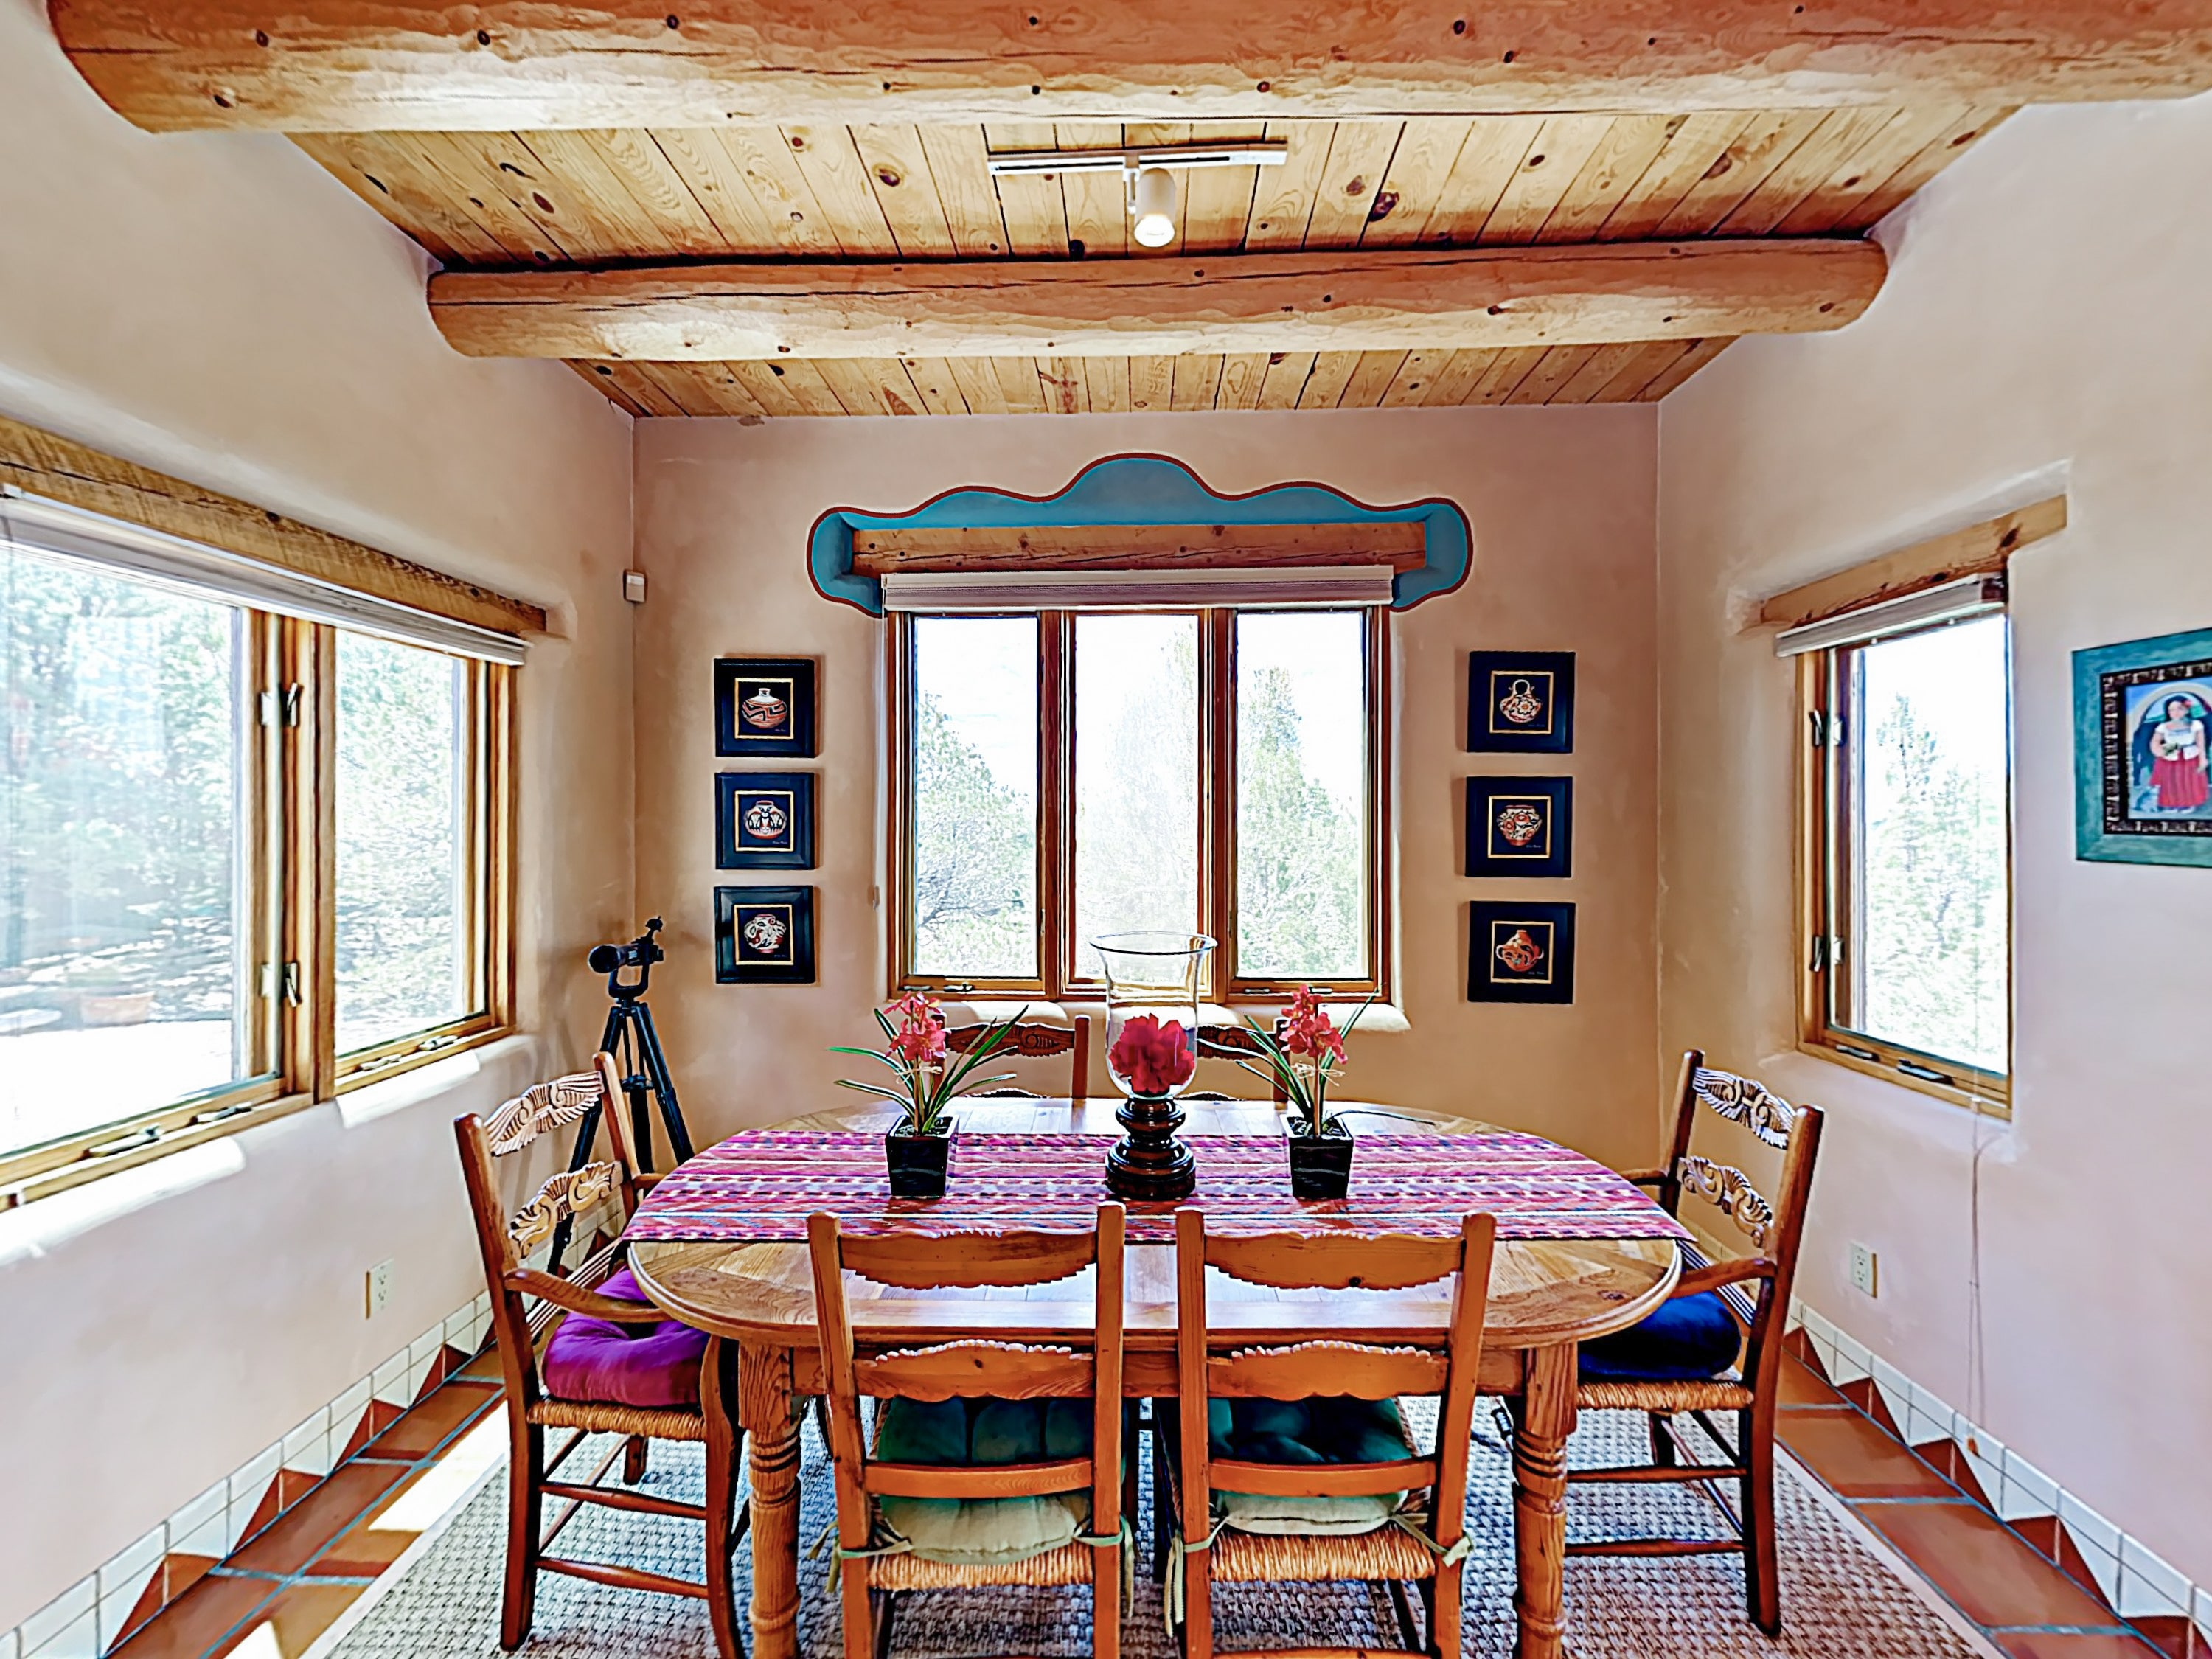 The window-lined dining area seats 6 to home-cooked meals.